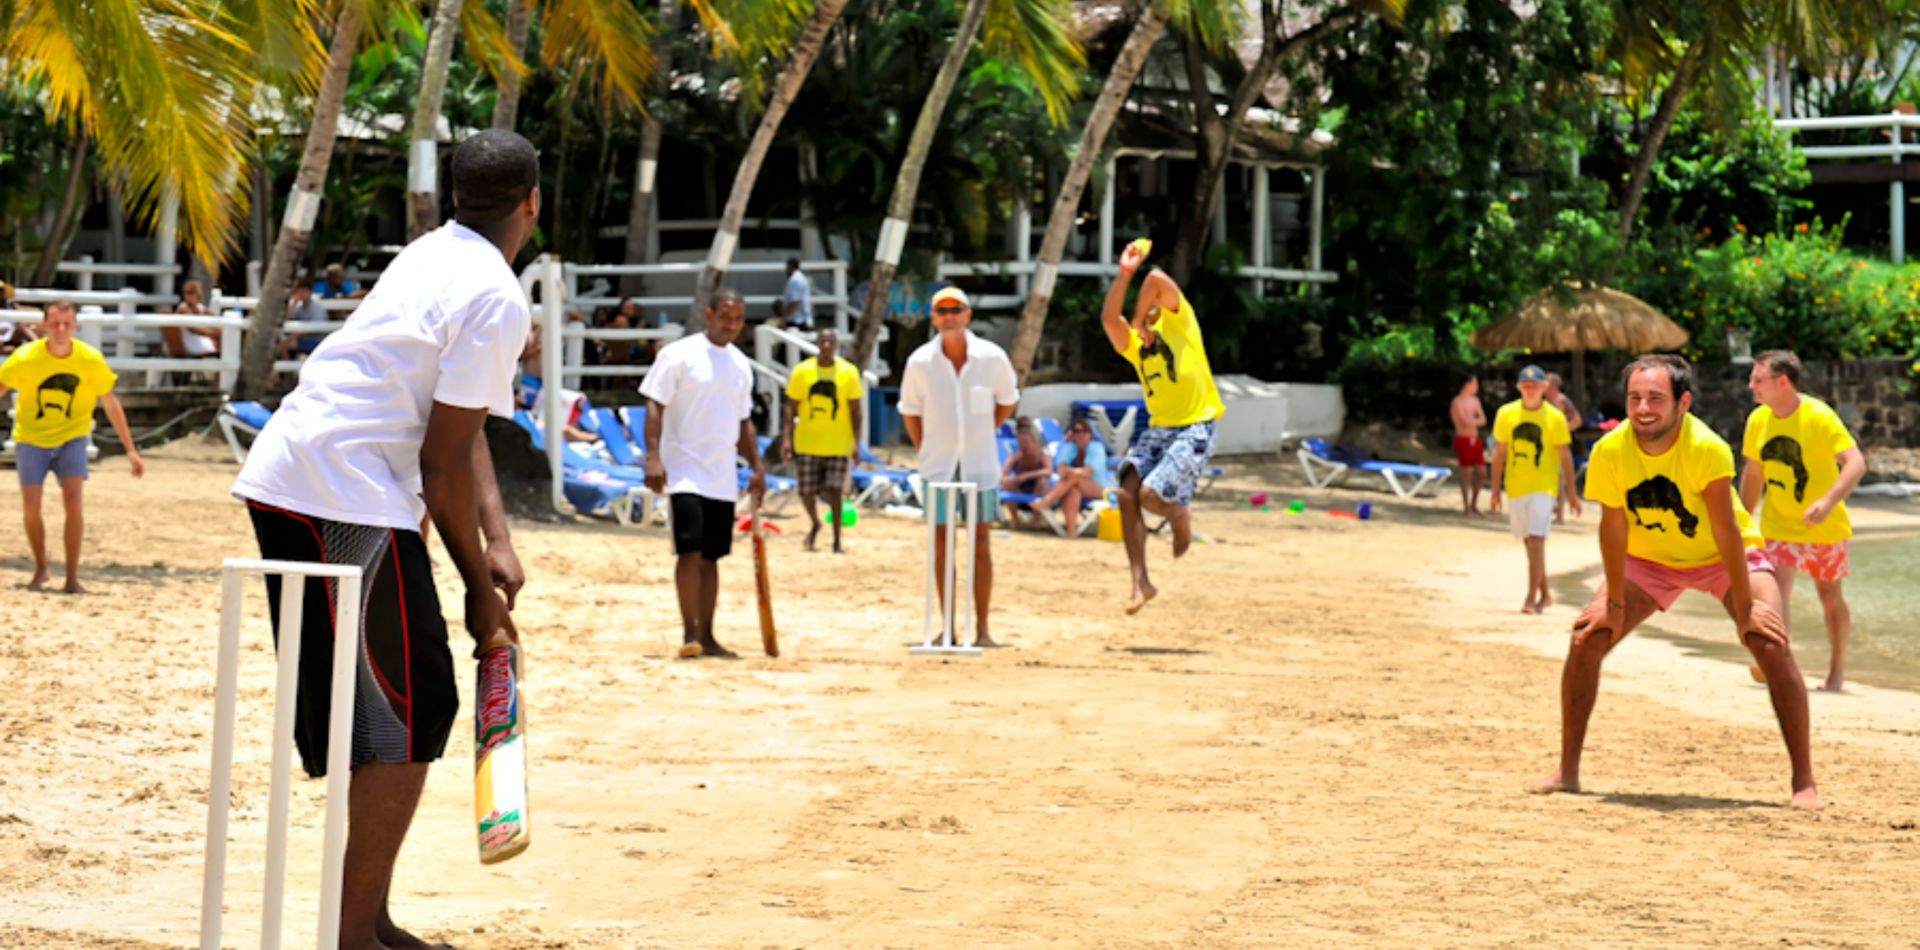 resort activity competition in st lucia resort